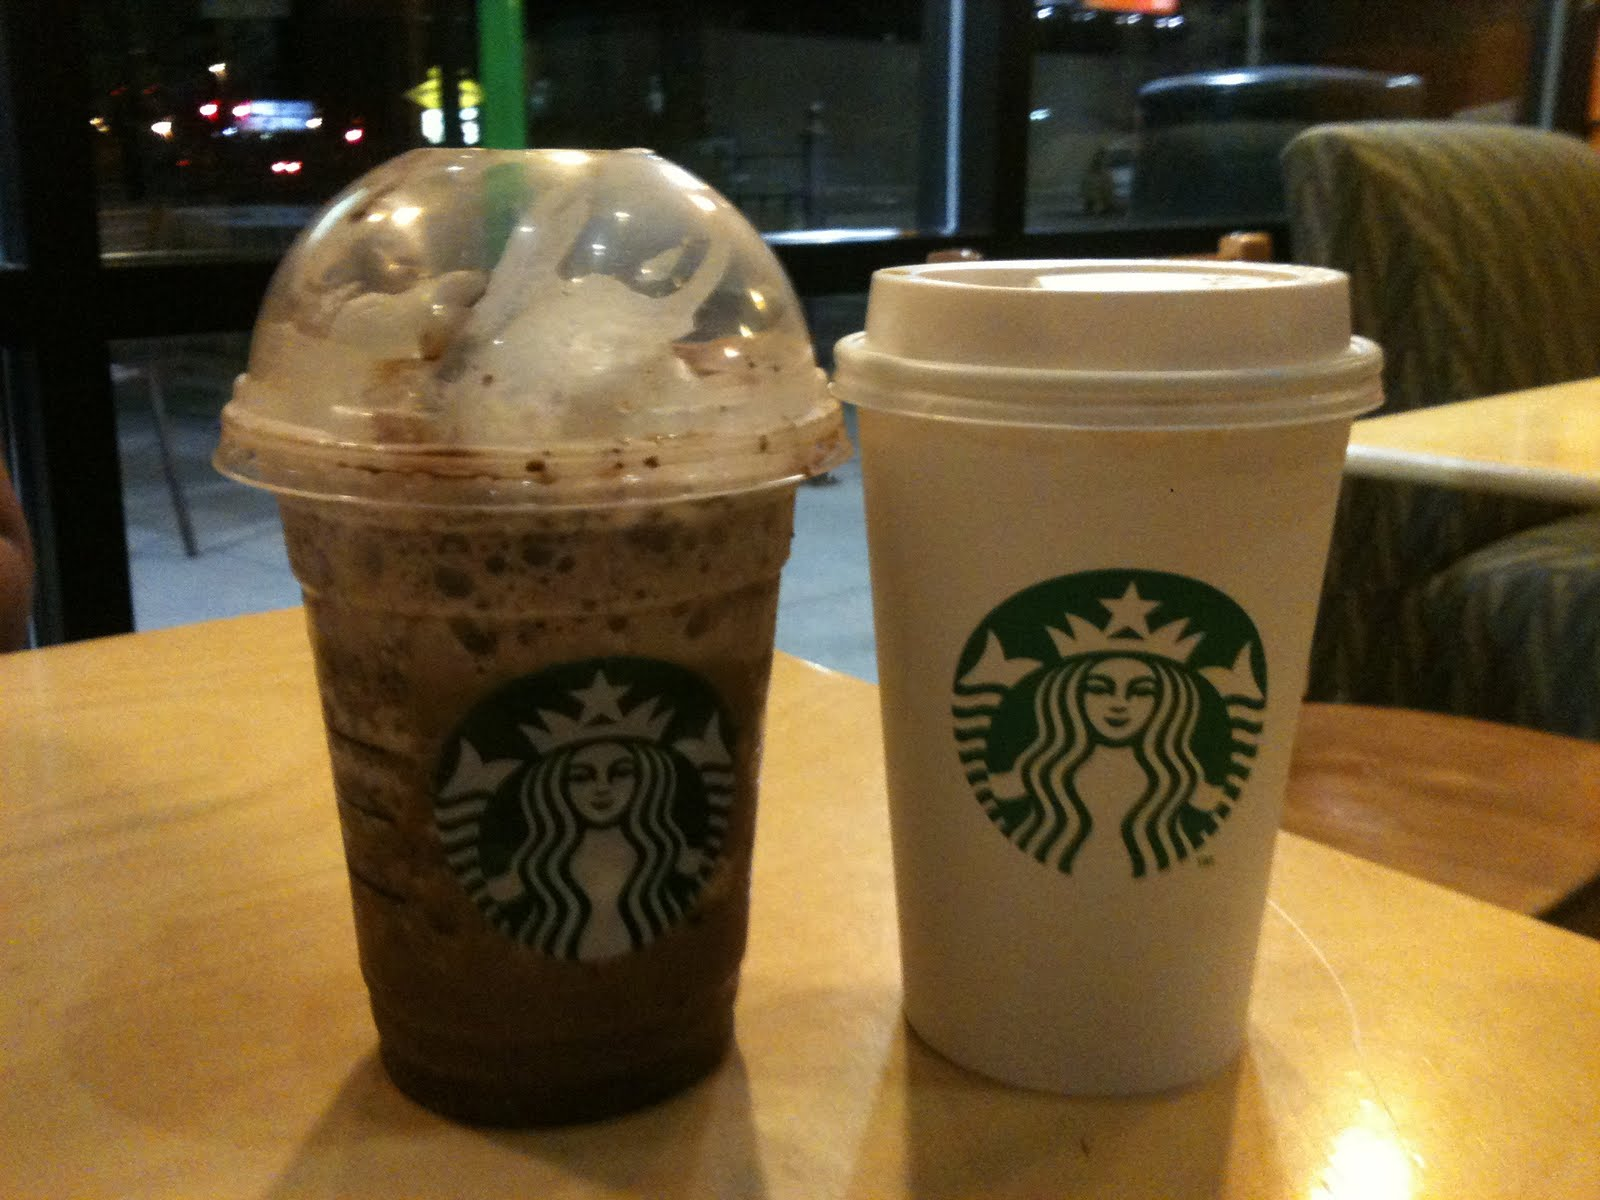 The Third Musketeer: One late night coffee!